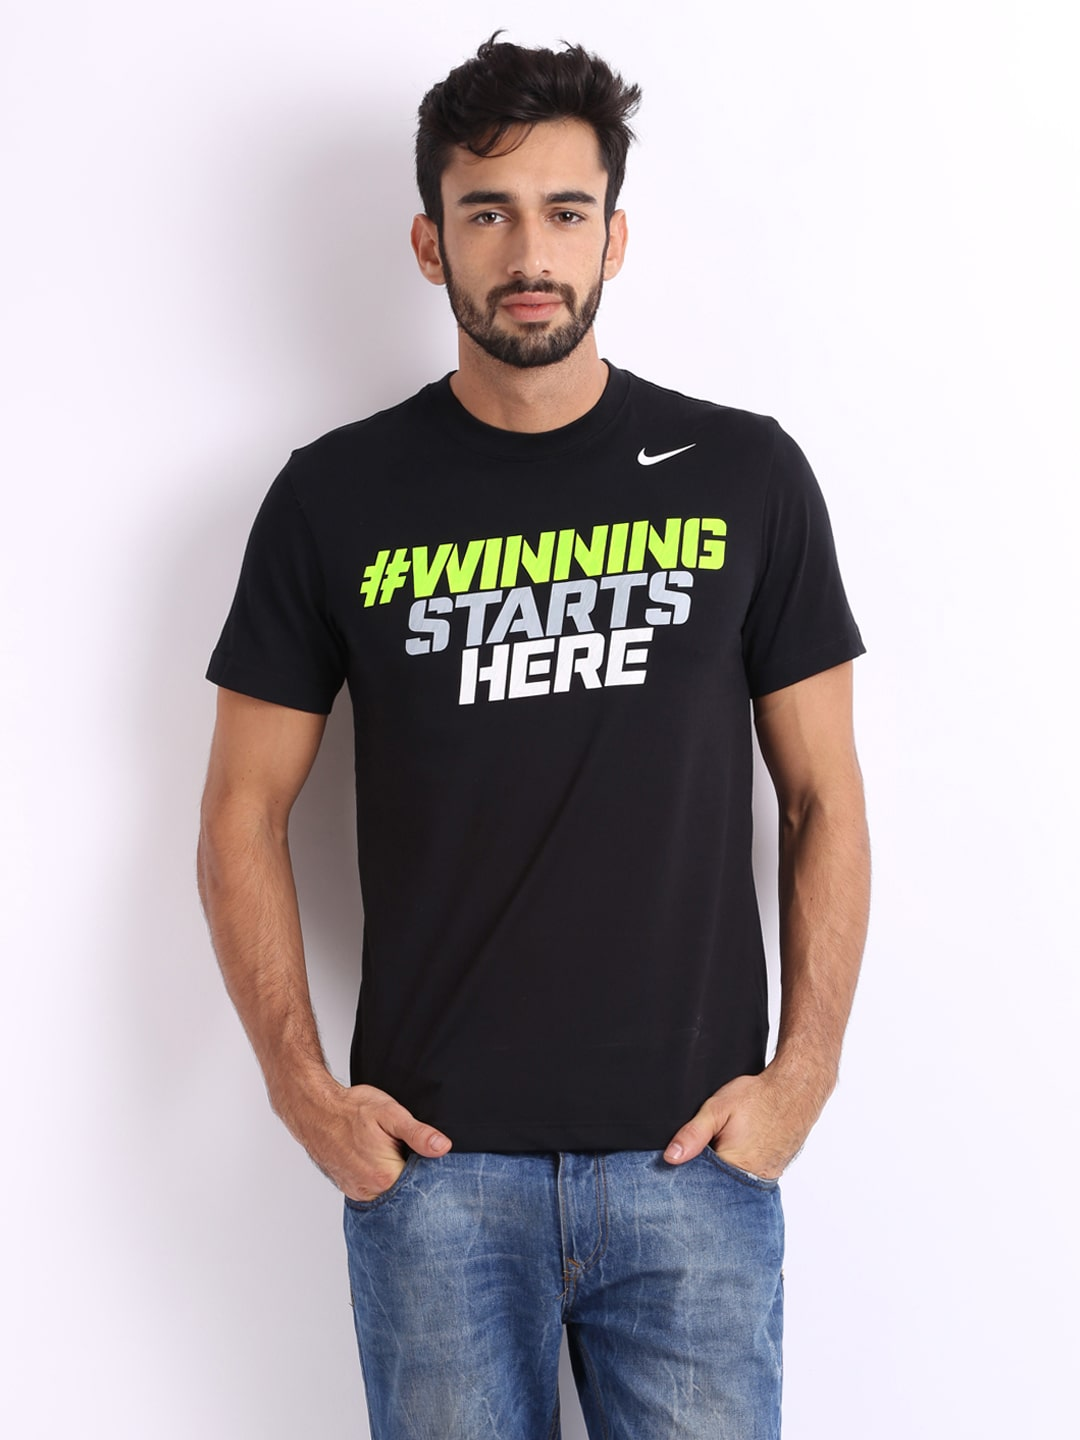 Price of nike t shirts in india for Nike t shirt price